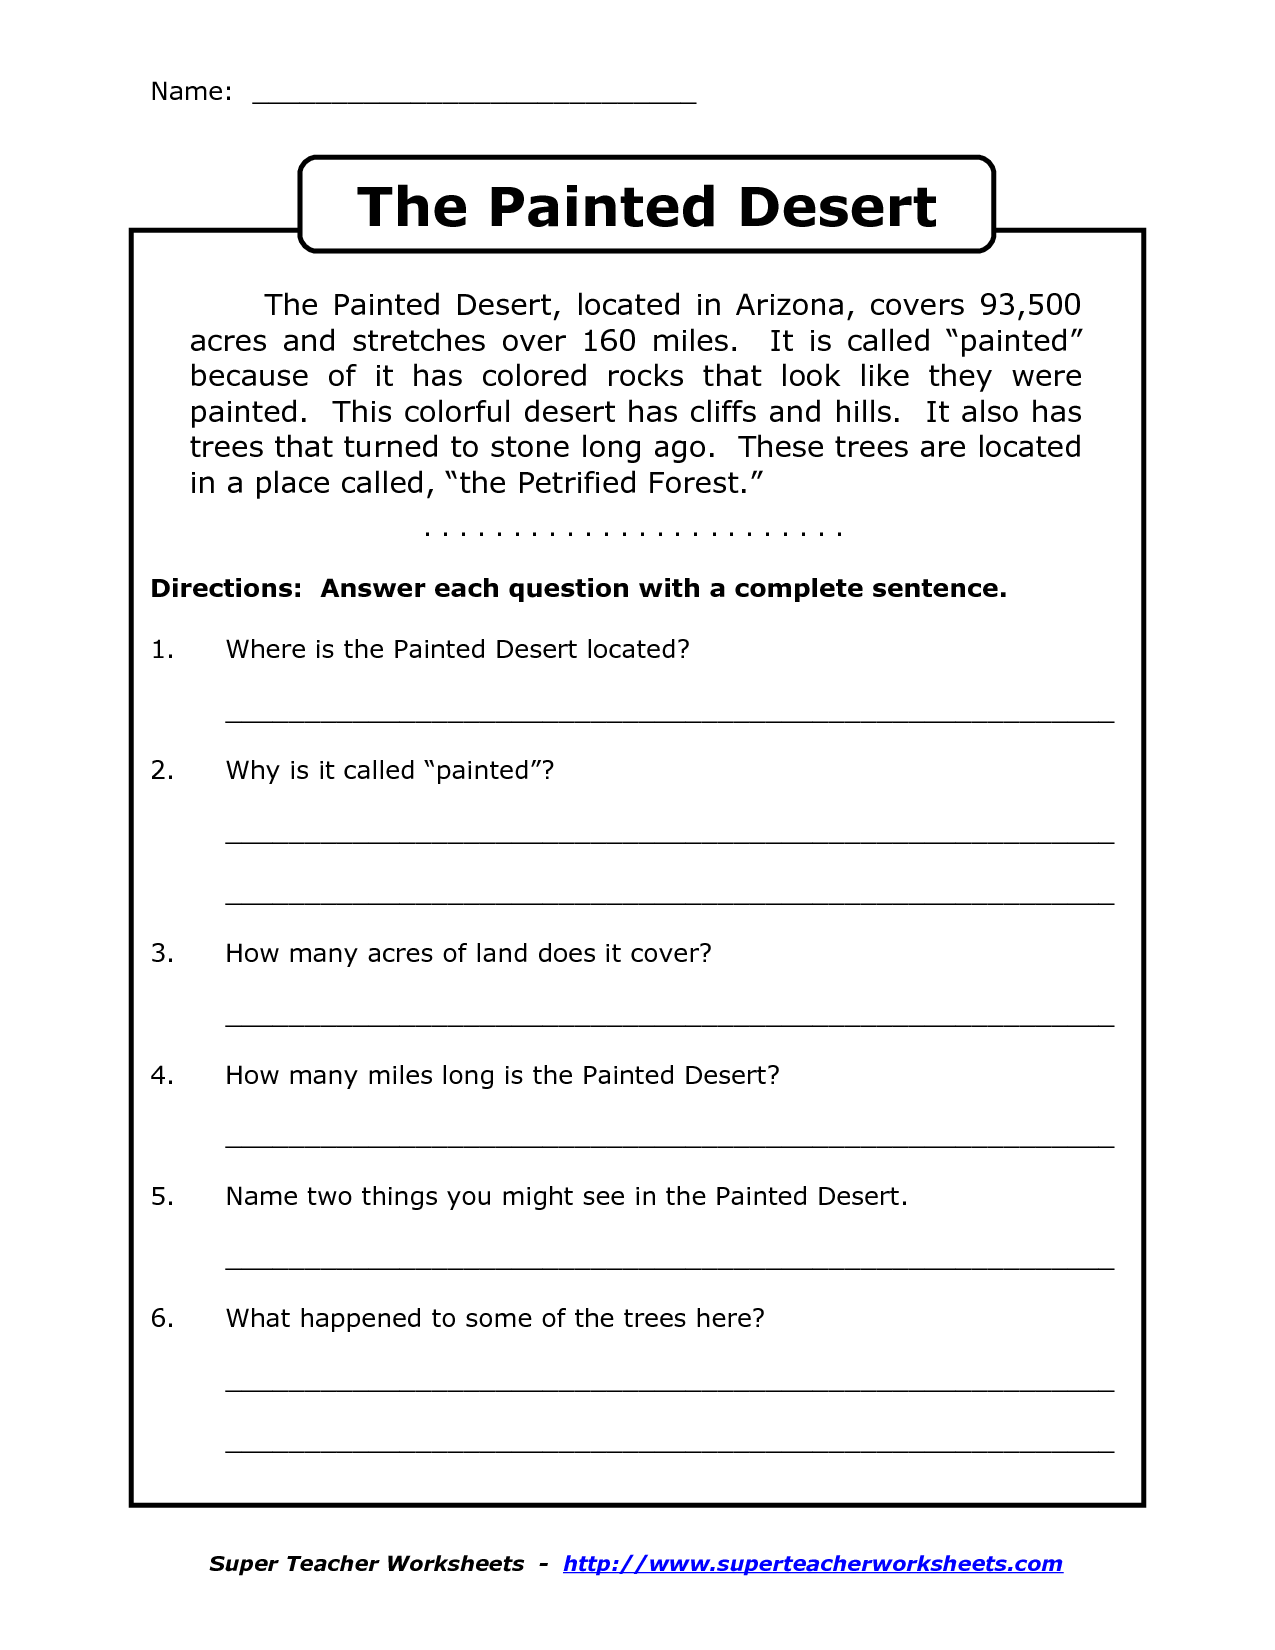 Worksheets Reading Comprehension Worksheets For 2nd Grade reading worksheets for 2nd grade hd wallpapers download free tumblr